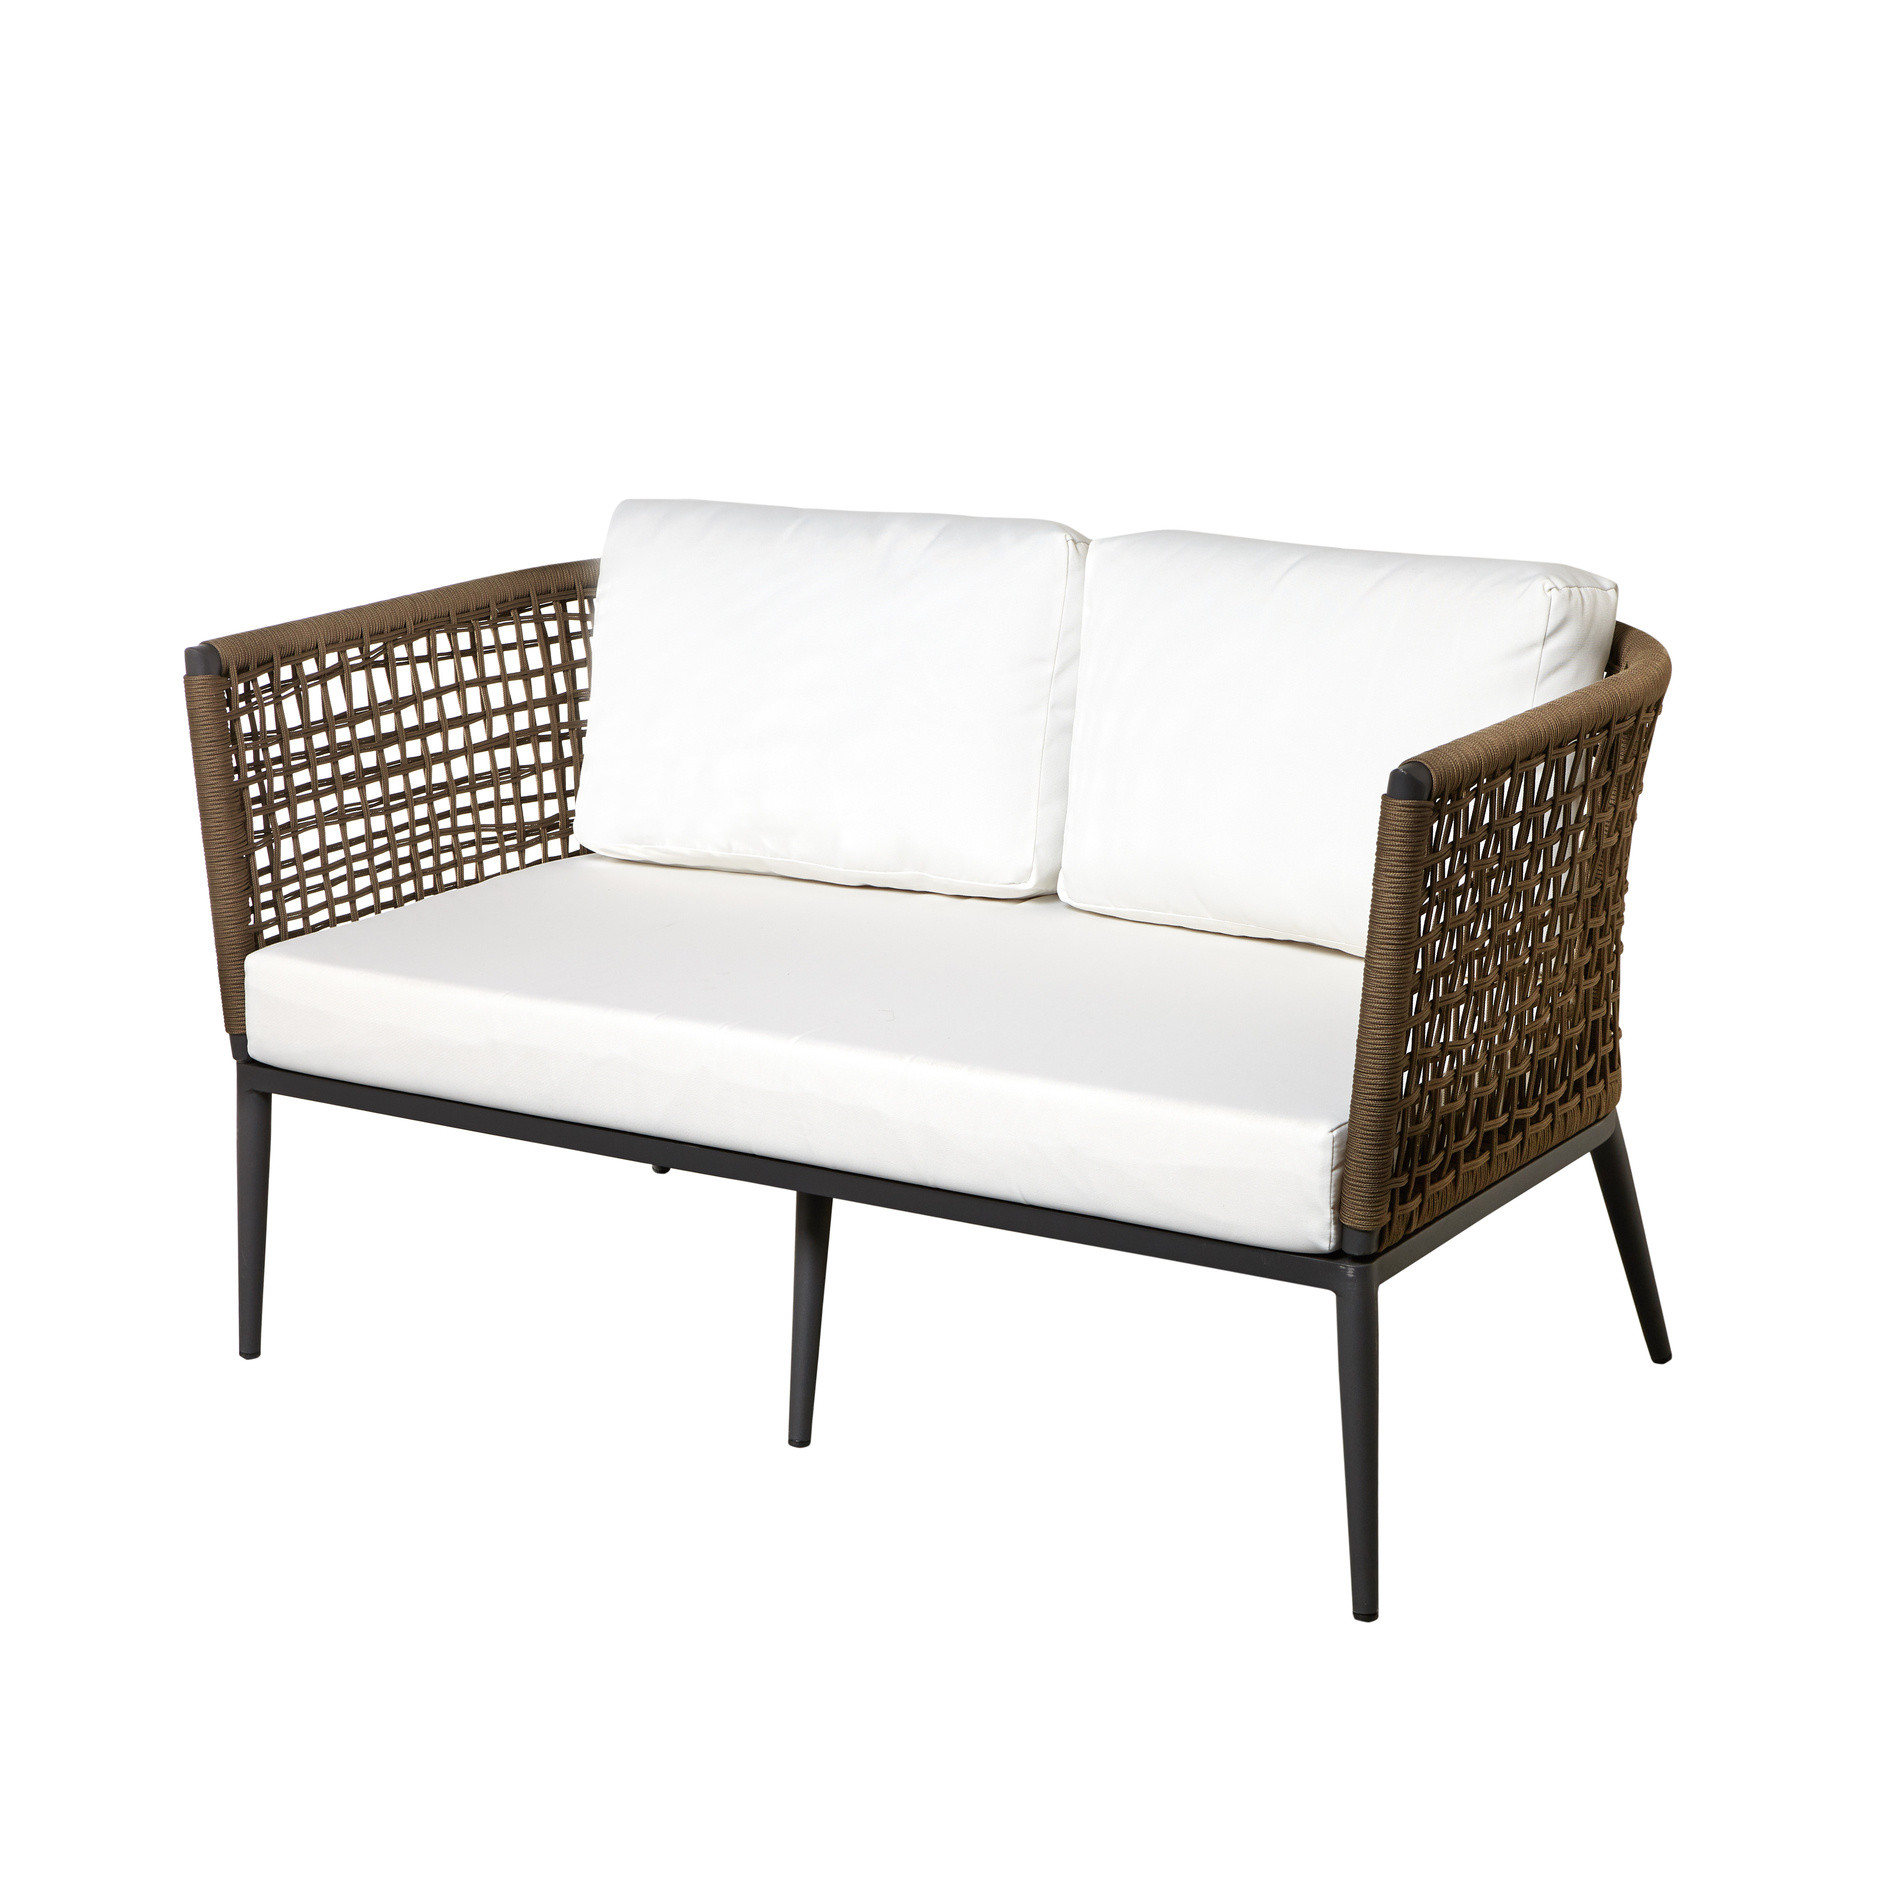 h small mamabeartech loveseat cover or co outdoor